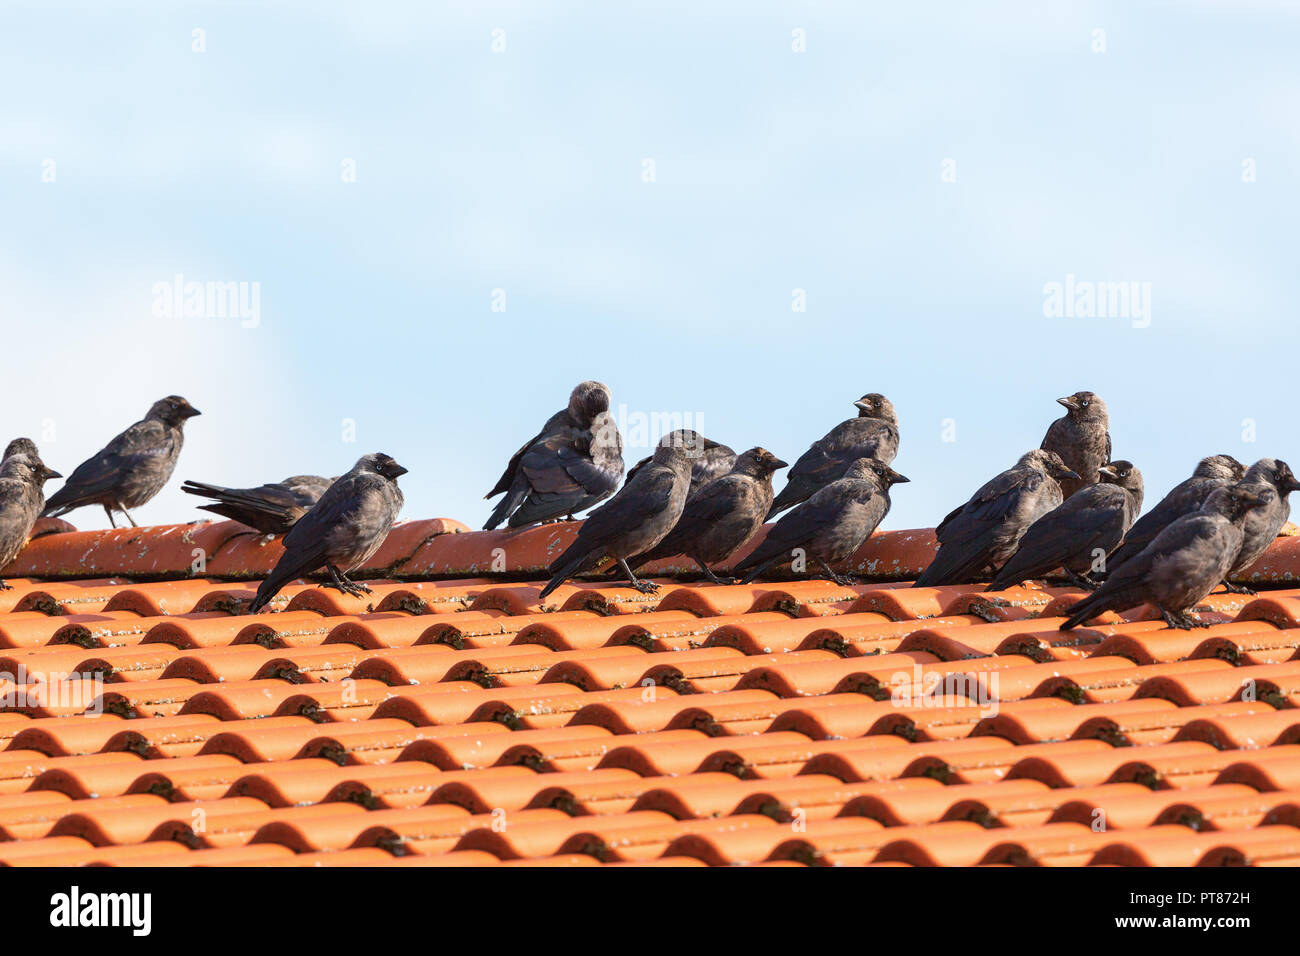 Jackdaws on the roof that sits in row - Stock Image